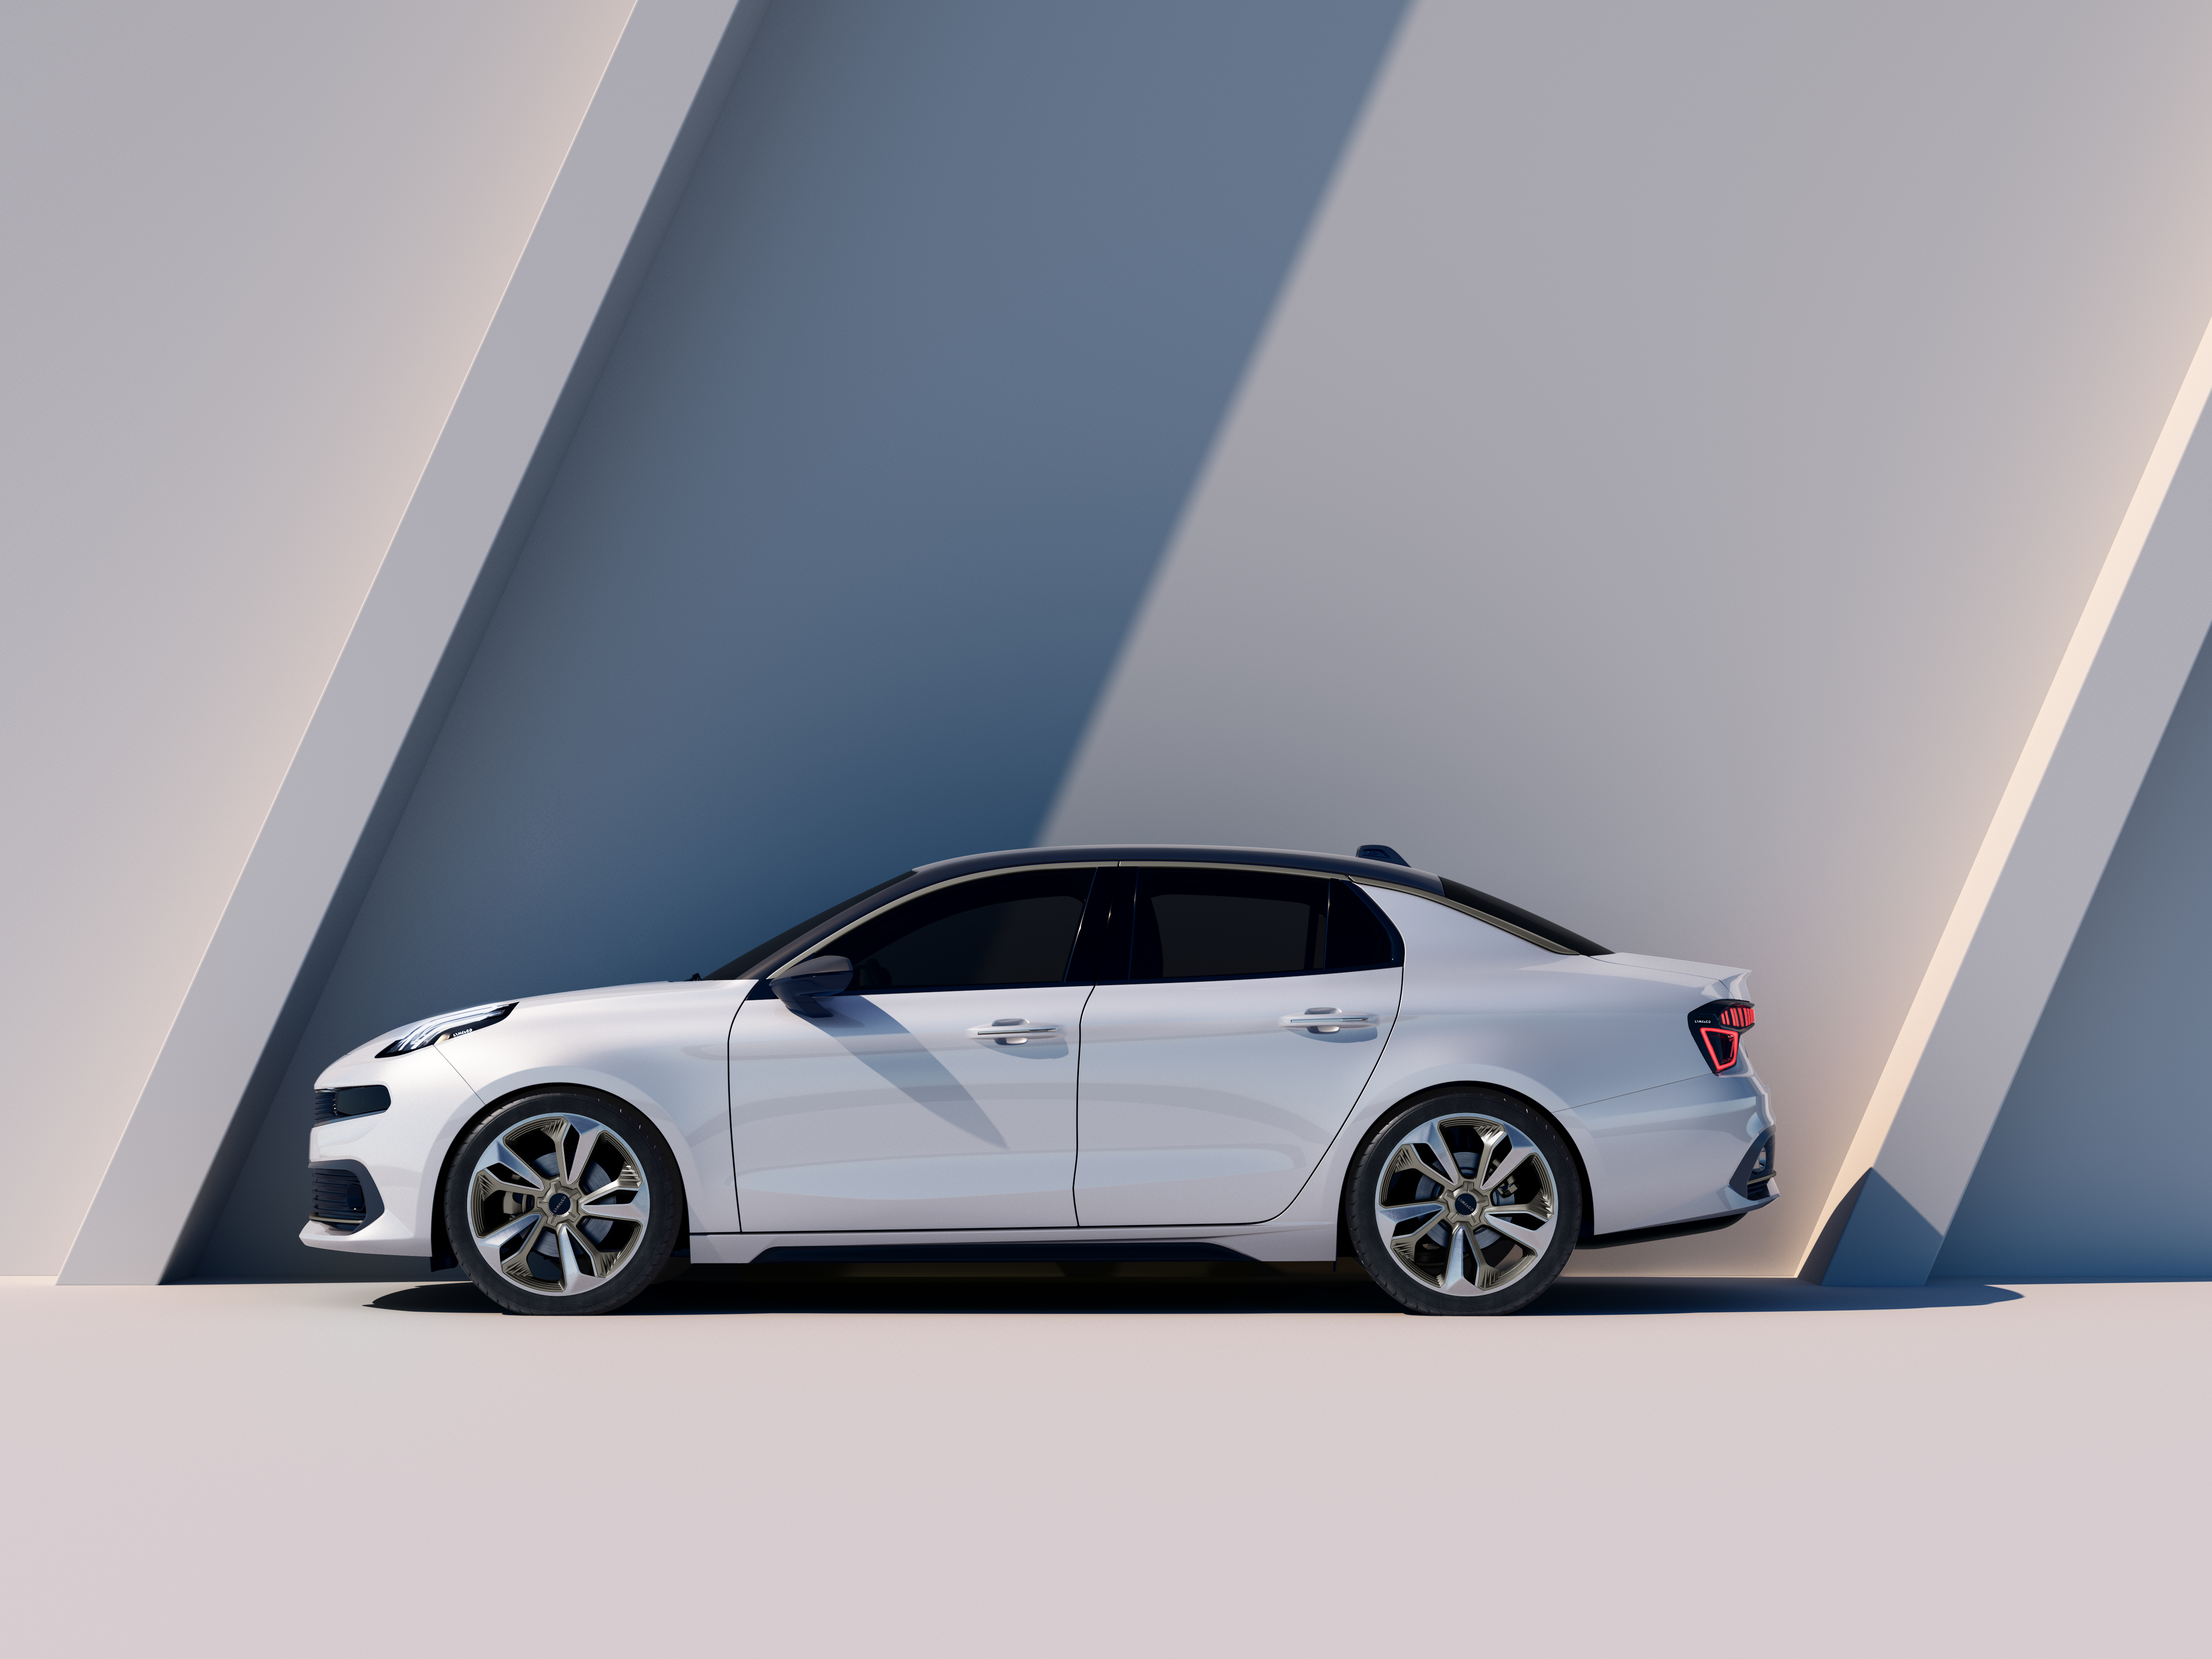 Lynk & Co. unveiled its latest concept the 03 ahead of the Shanghai Auto Show on april 16, 2017.